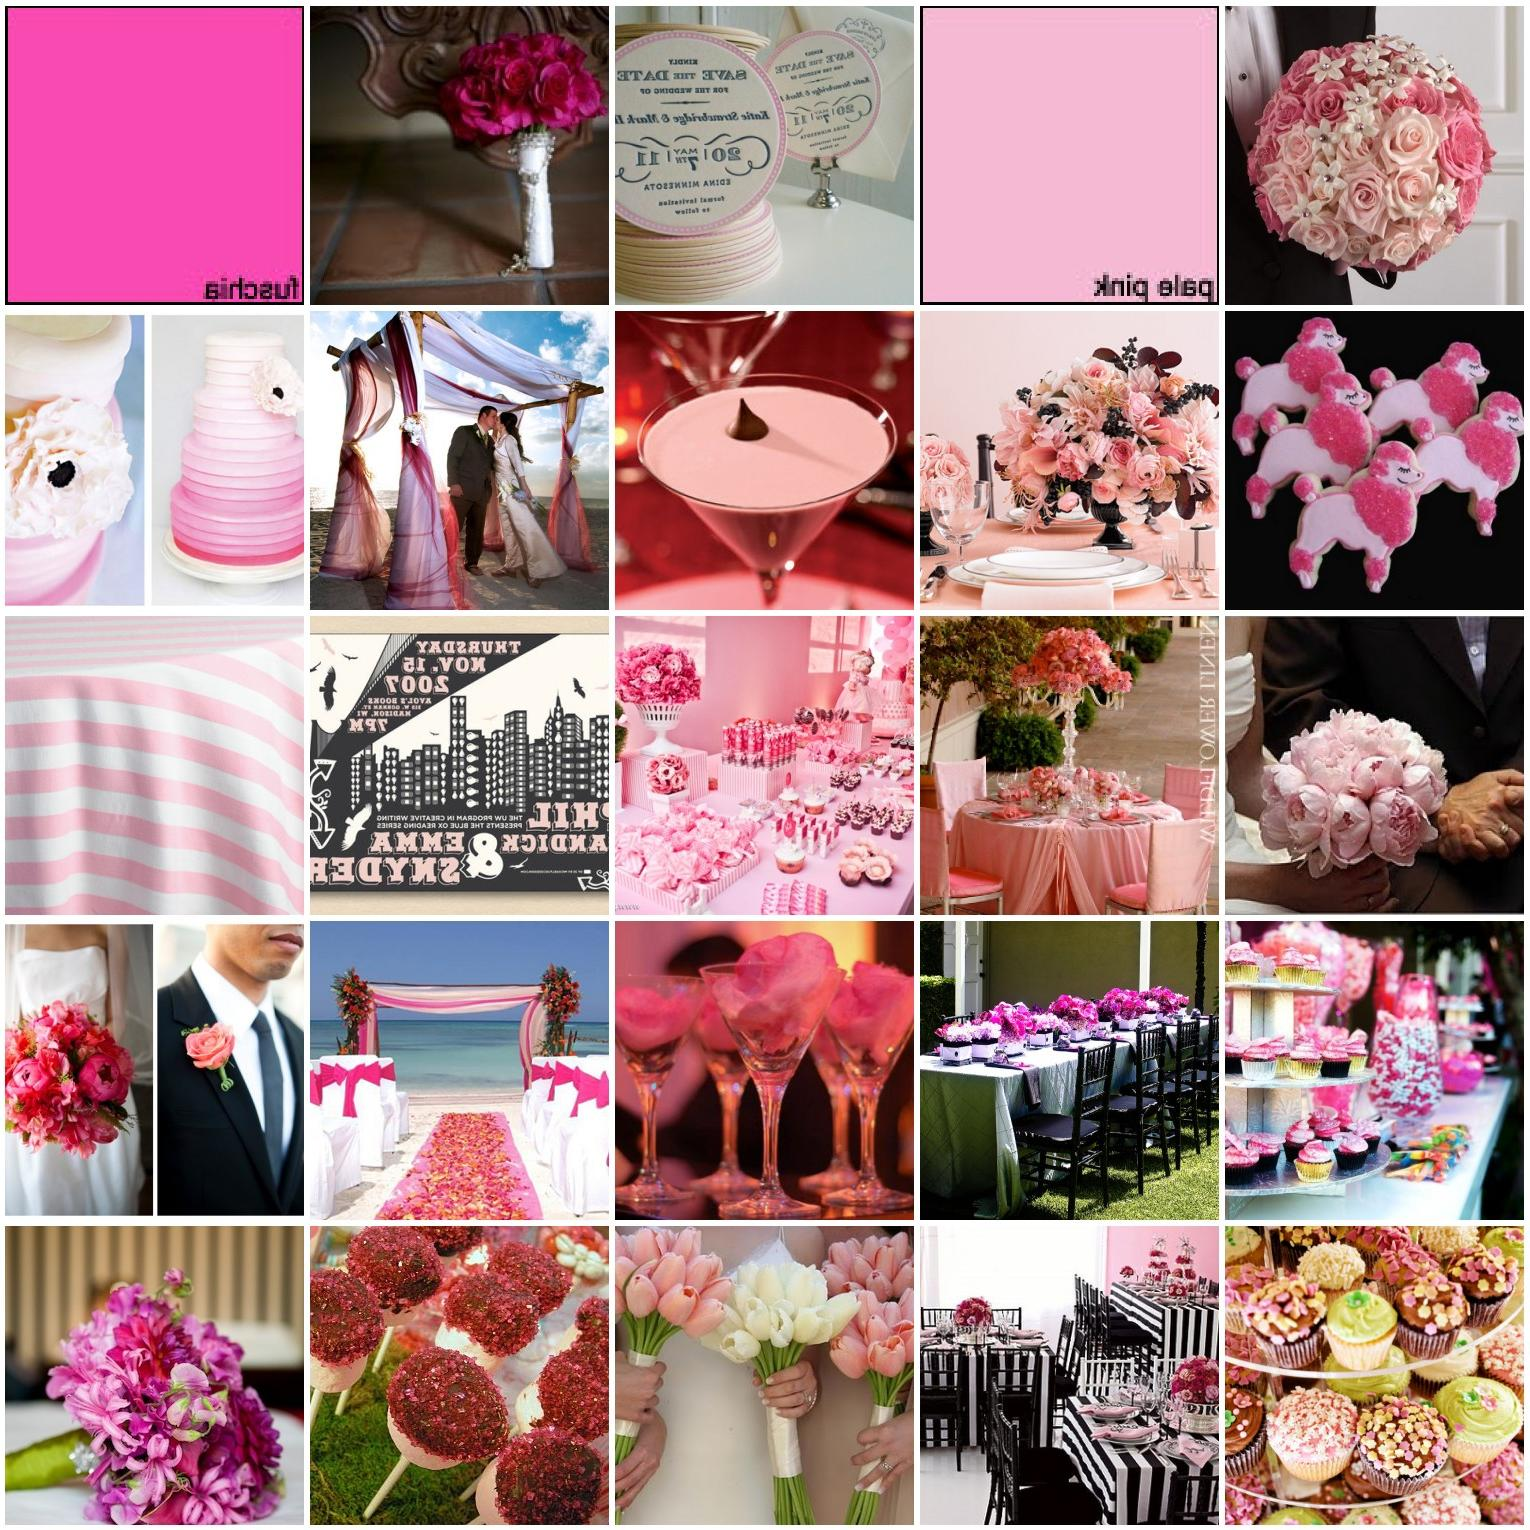 Her DREAM wedding is pink with